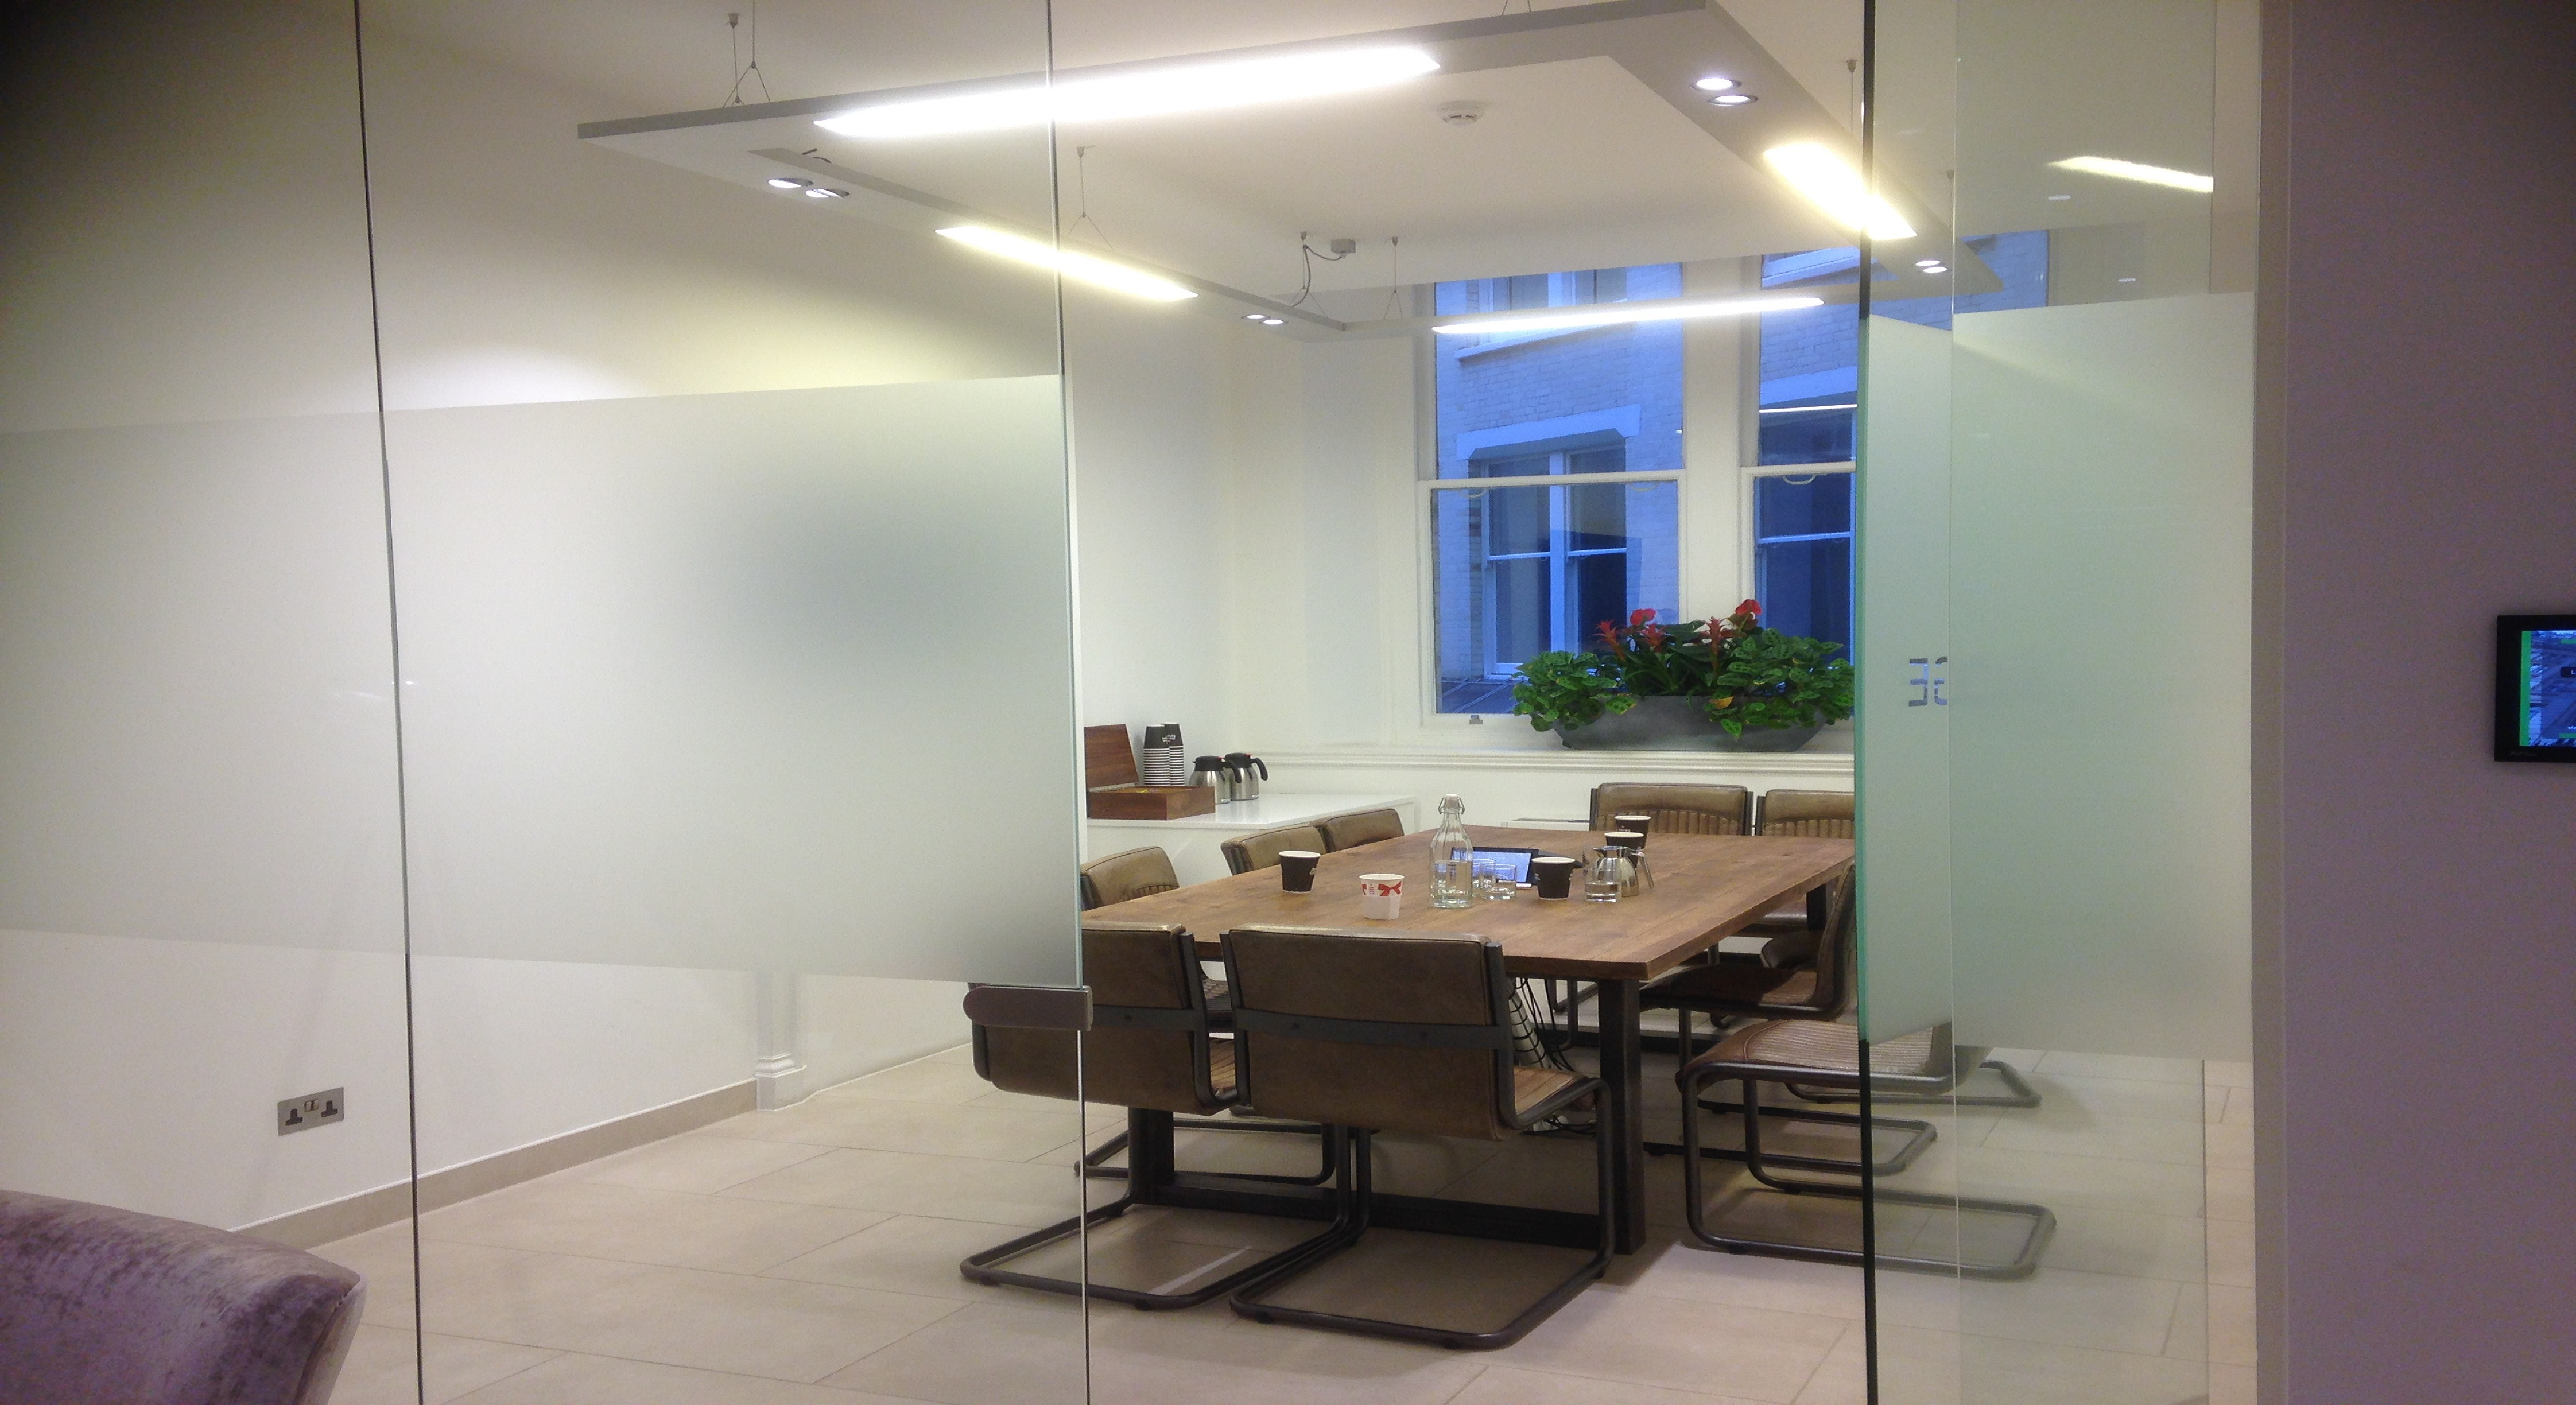 Commercial Electricians For All Your Business Needs In London